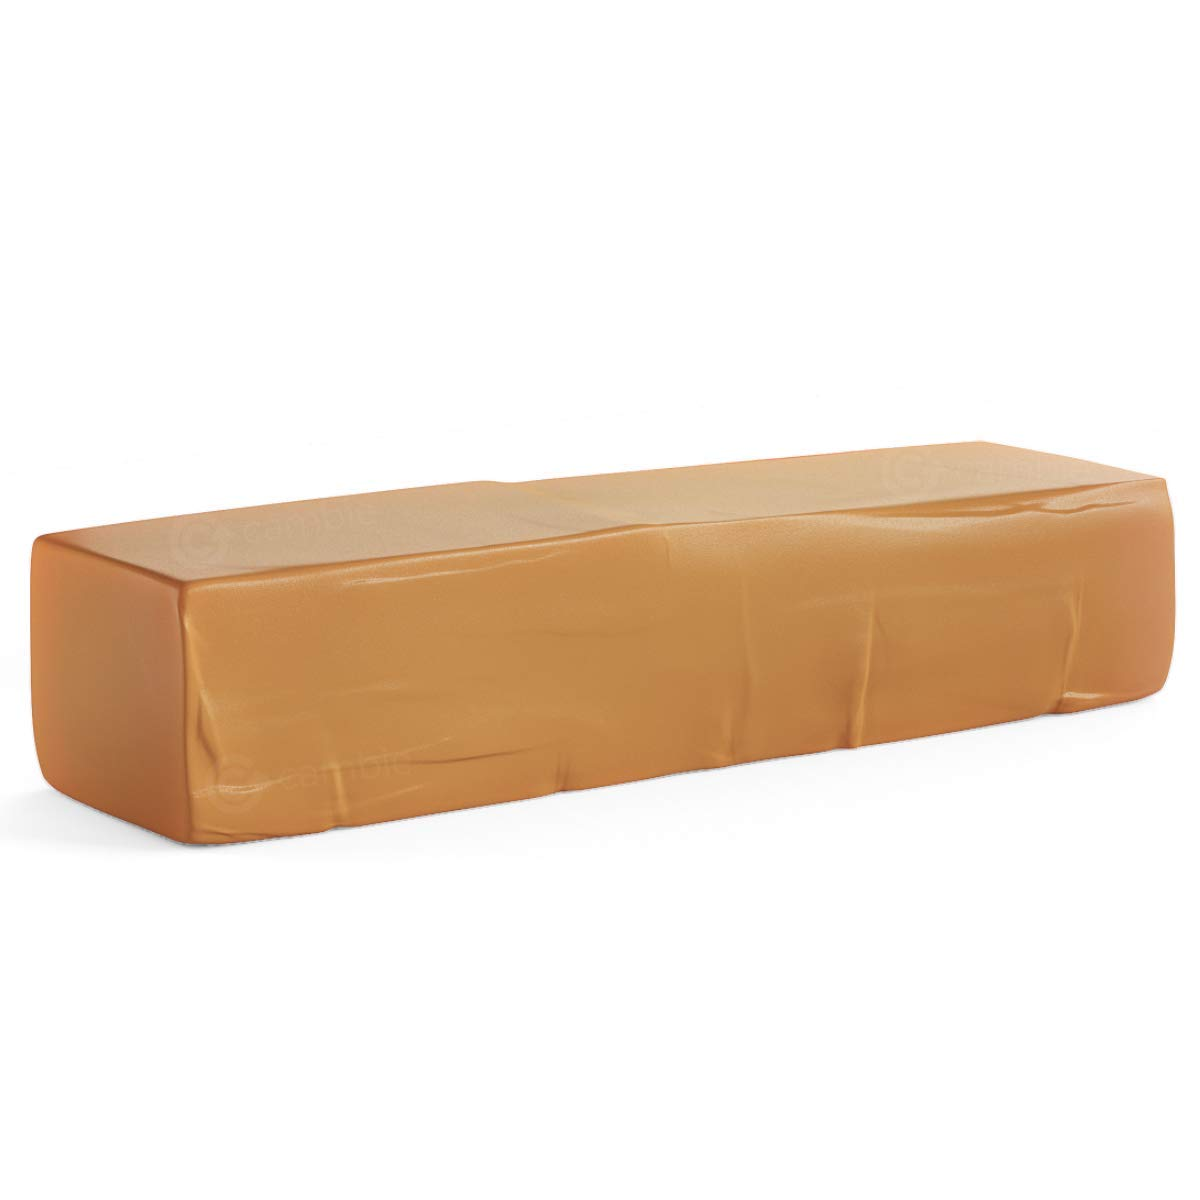 Cambie Caramel Loaf | Ready to Use | Rich, Creamy and Soft | For Caramel Apples, Dipping, Truffles and Bakery Applications (5 lb)